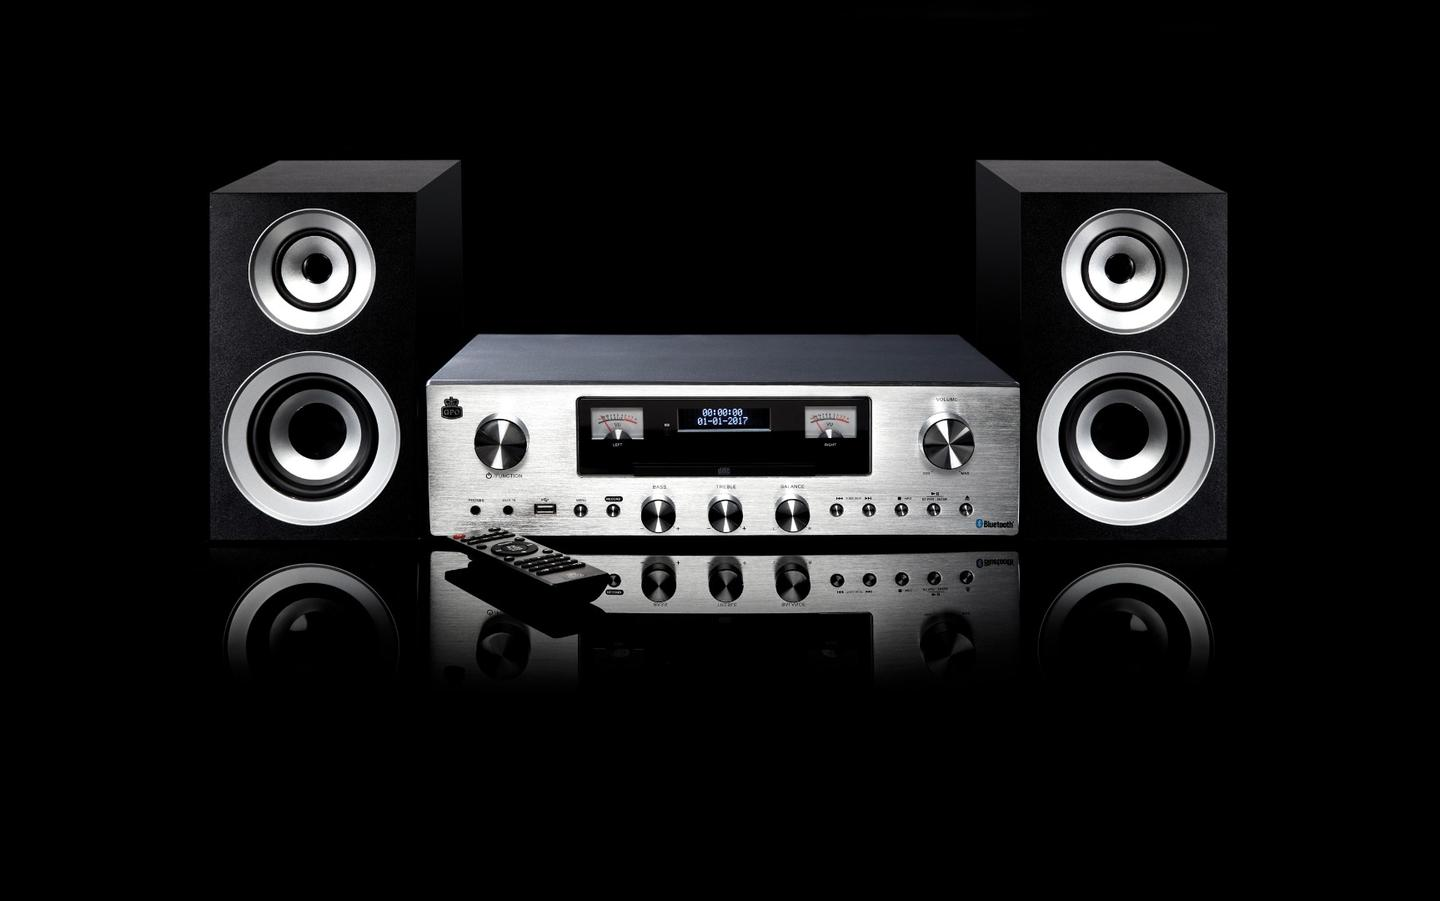 The amp/music player combo PR200 (and included speakers) from retro audio gear maker GPO